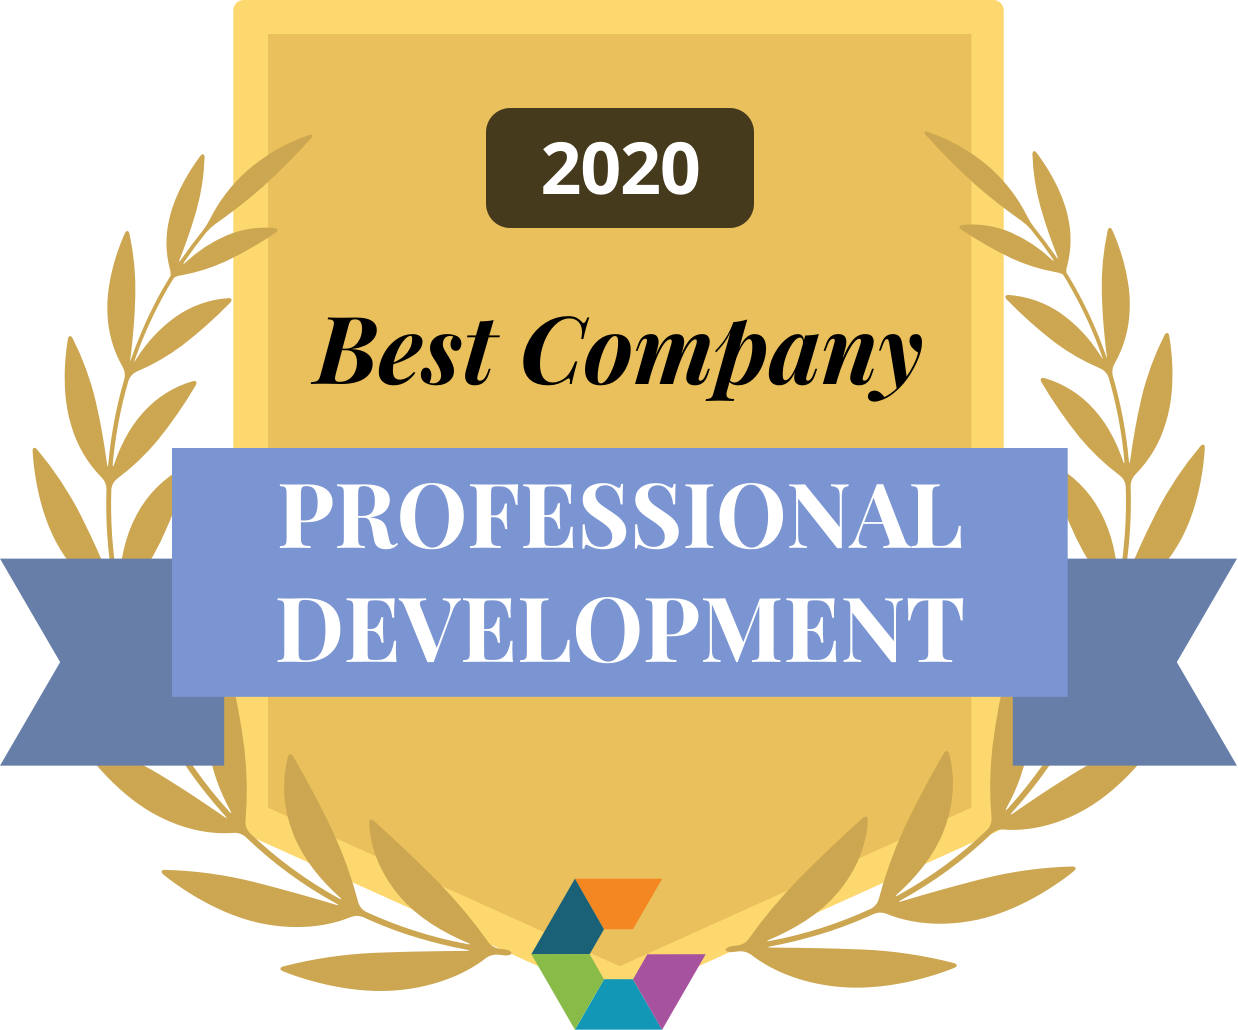 Comparably- Best Professional Development